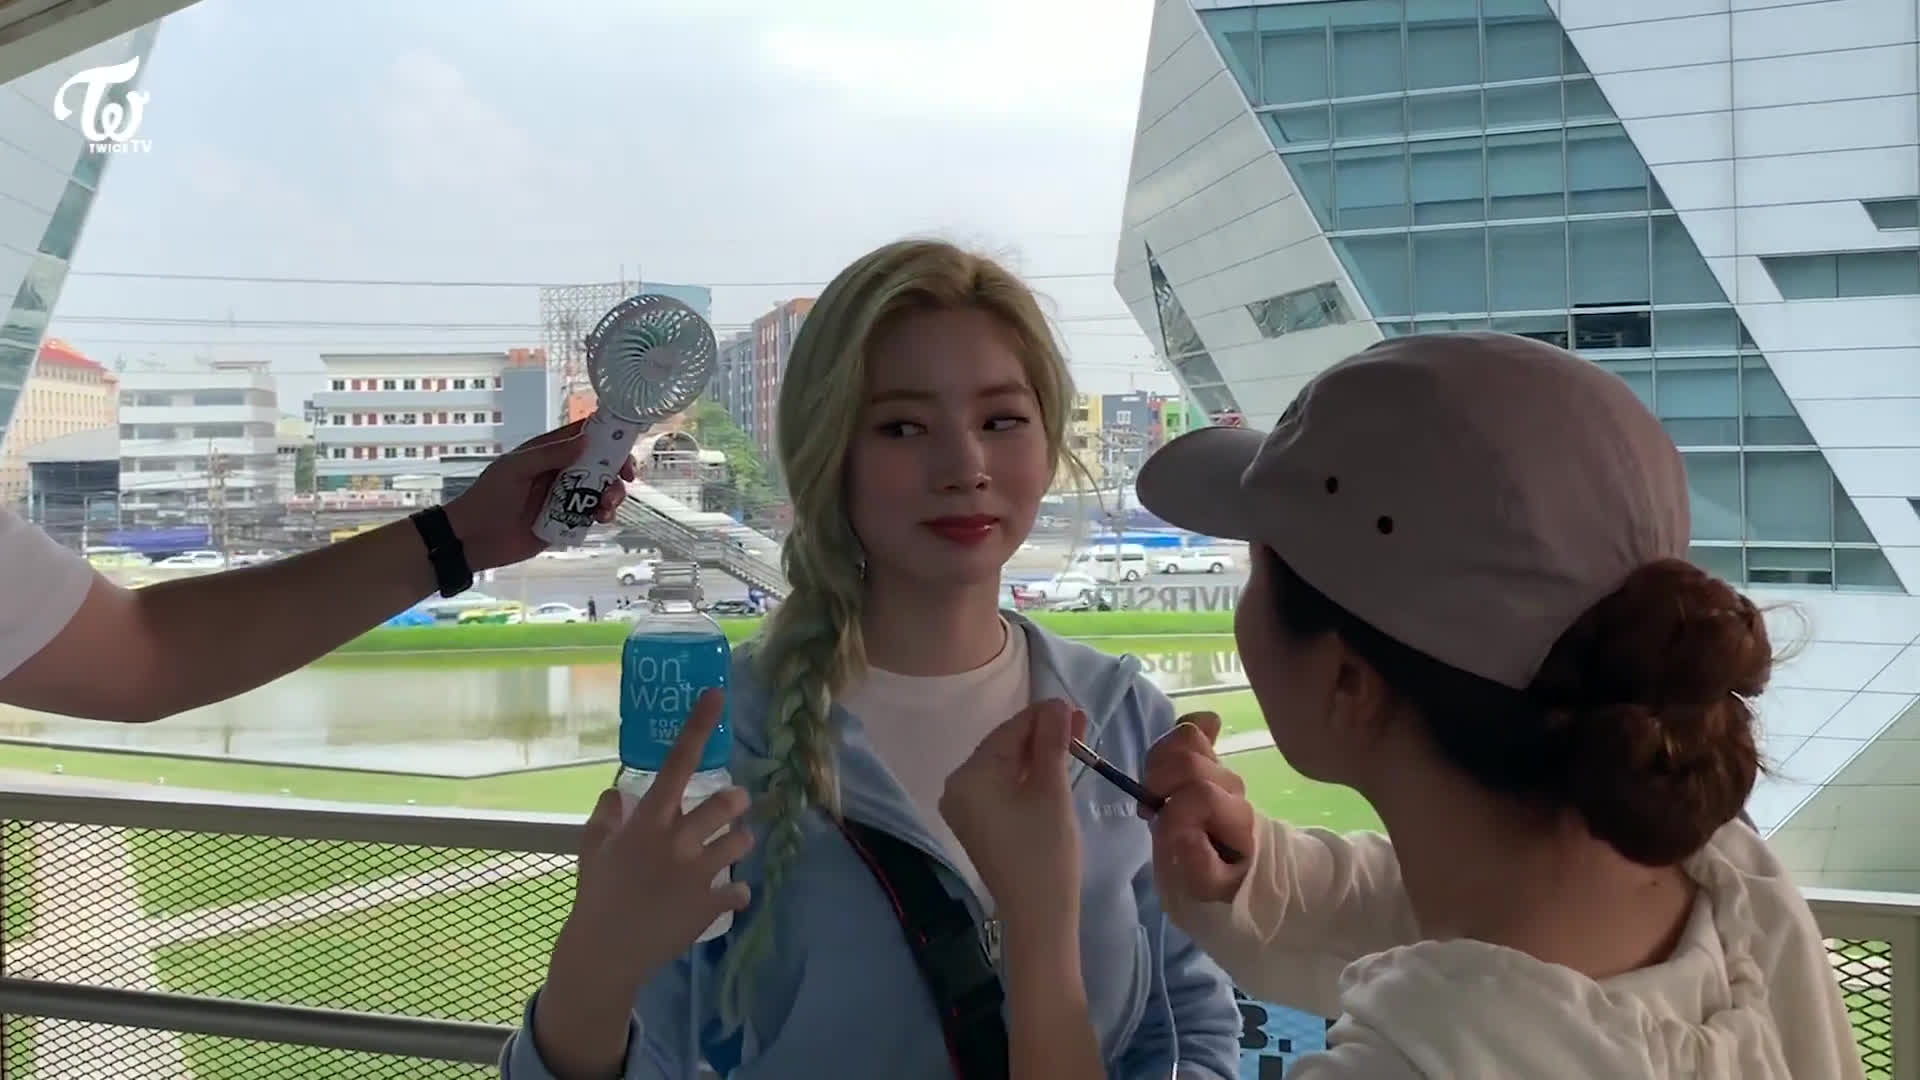 [AutoCut_DAHYUN] TWICE 2Q Highlight